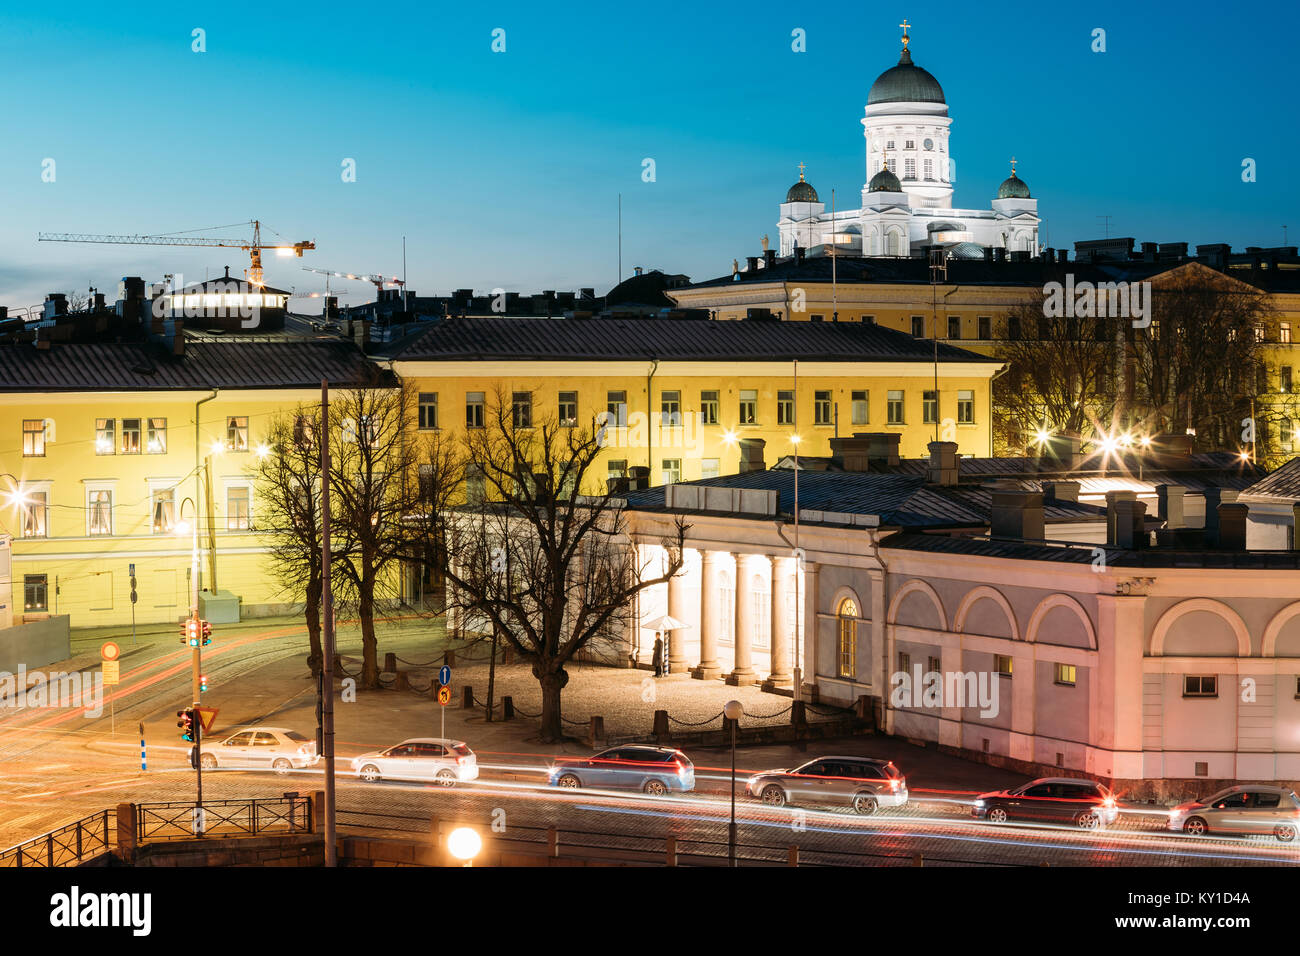 Helsinki, Finland. Night Evening View Of Helsinki Cathedral And Military Prison Building. - Stock Image